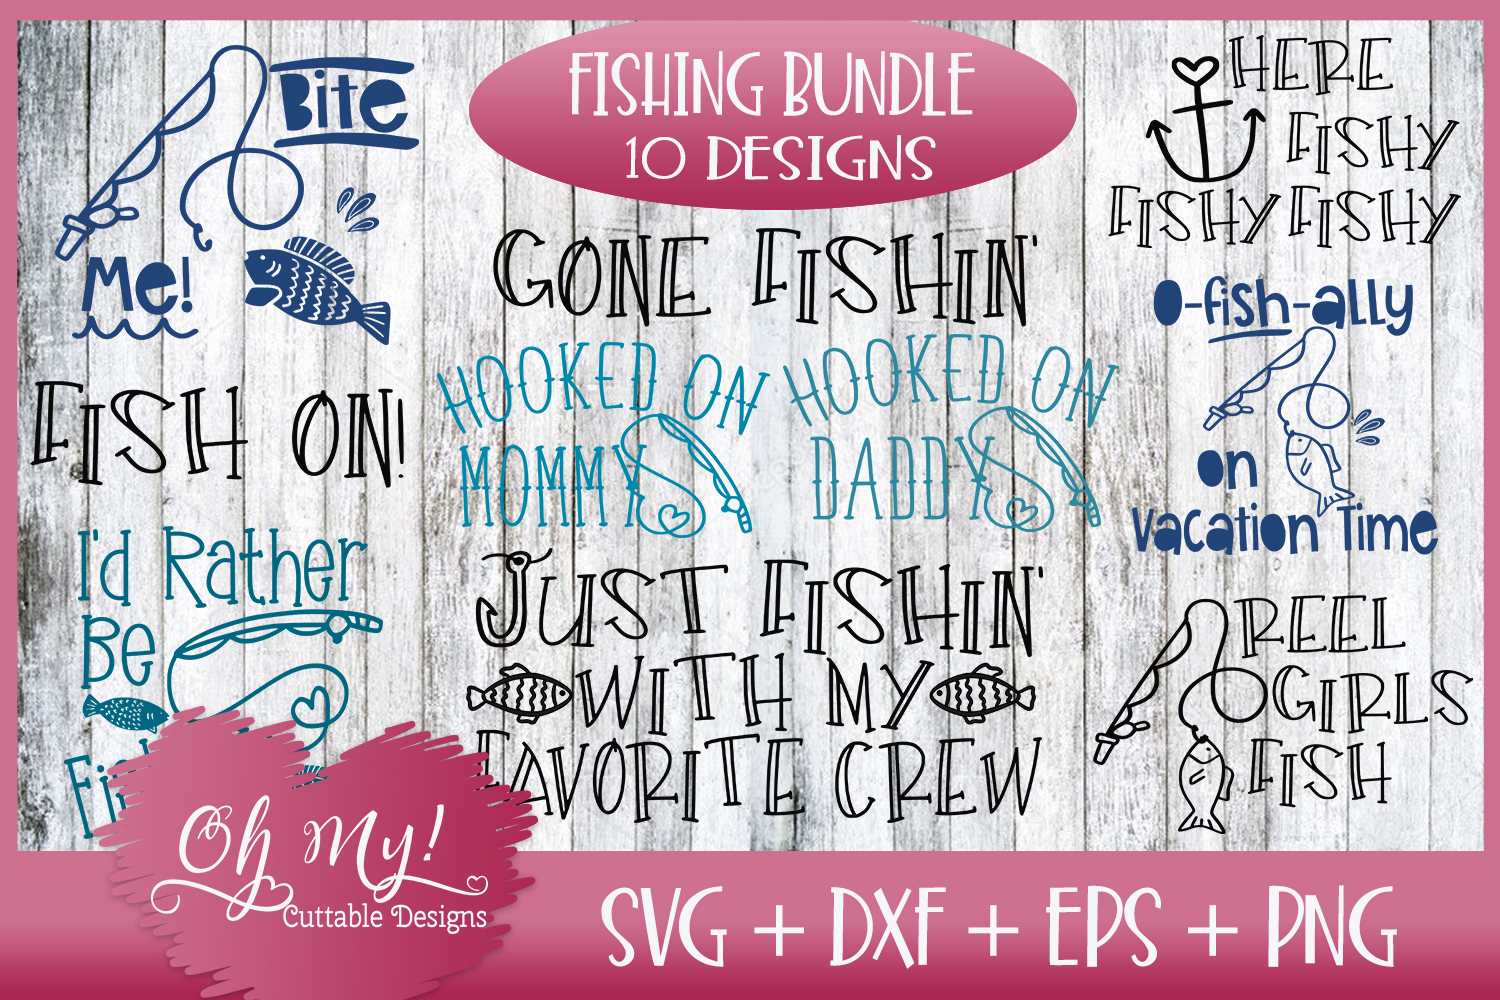 Fishing Bundle - 10 DESIGNS - SVG DXF EPS PNG Cutting Files example image 1